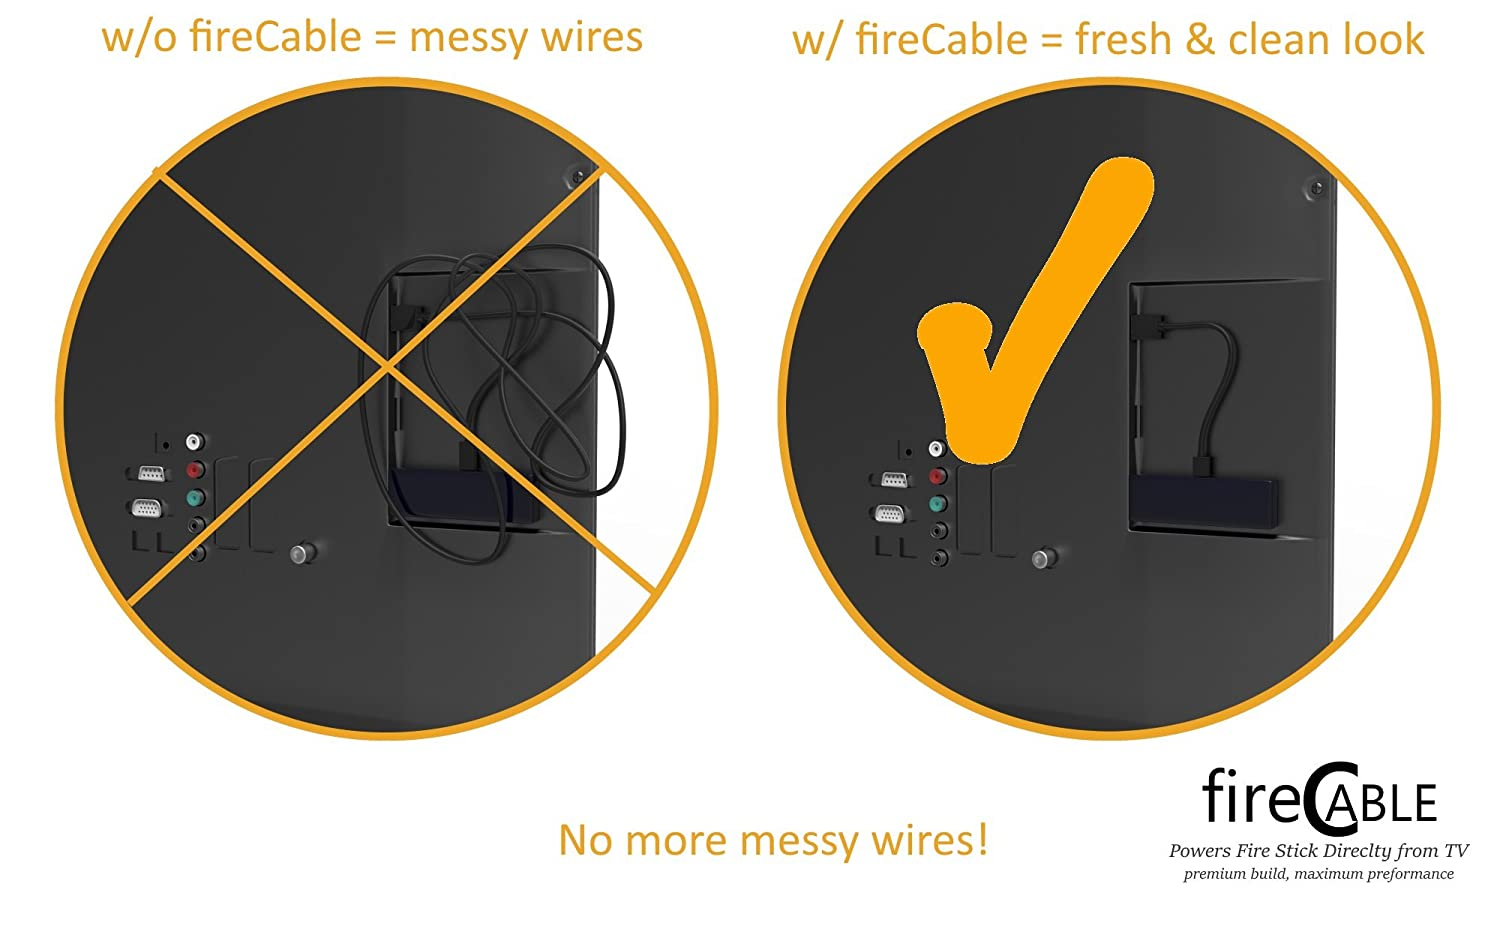 com fire stick wireless cable for fire tv stick com fire stick wireless cable for fire tv stick everything else